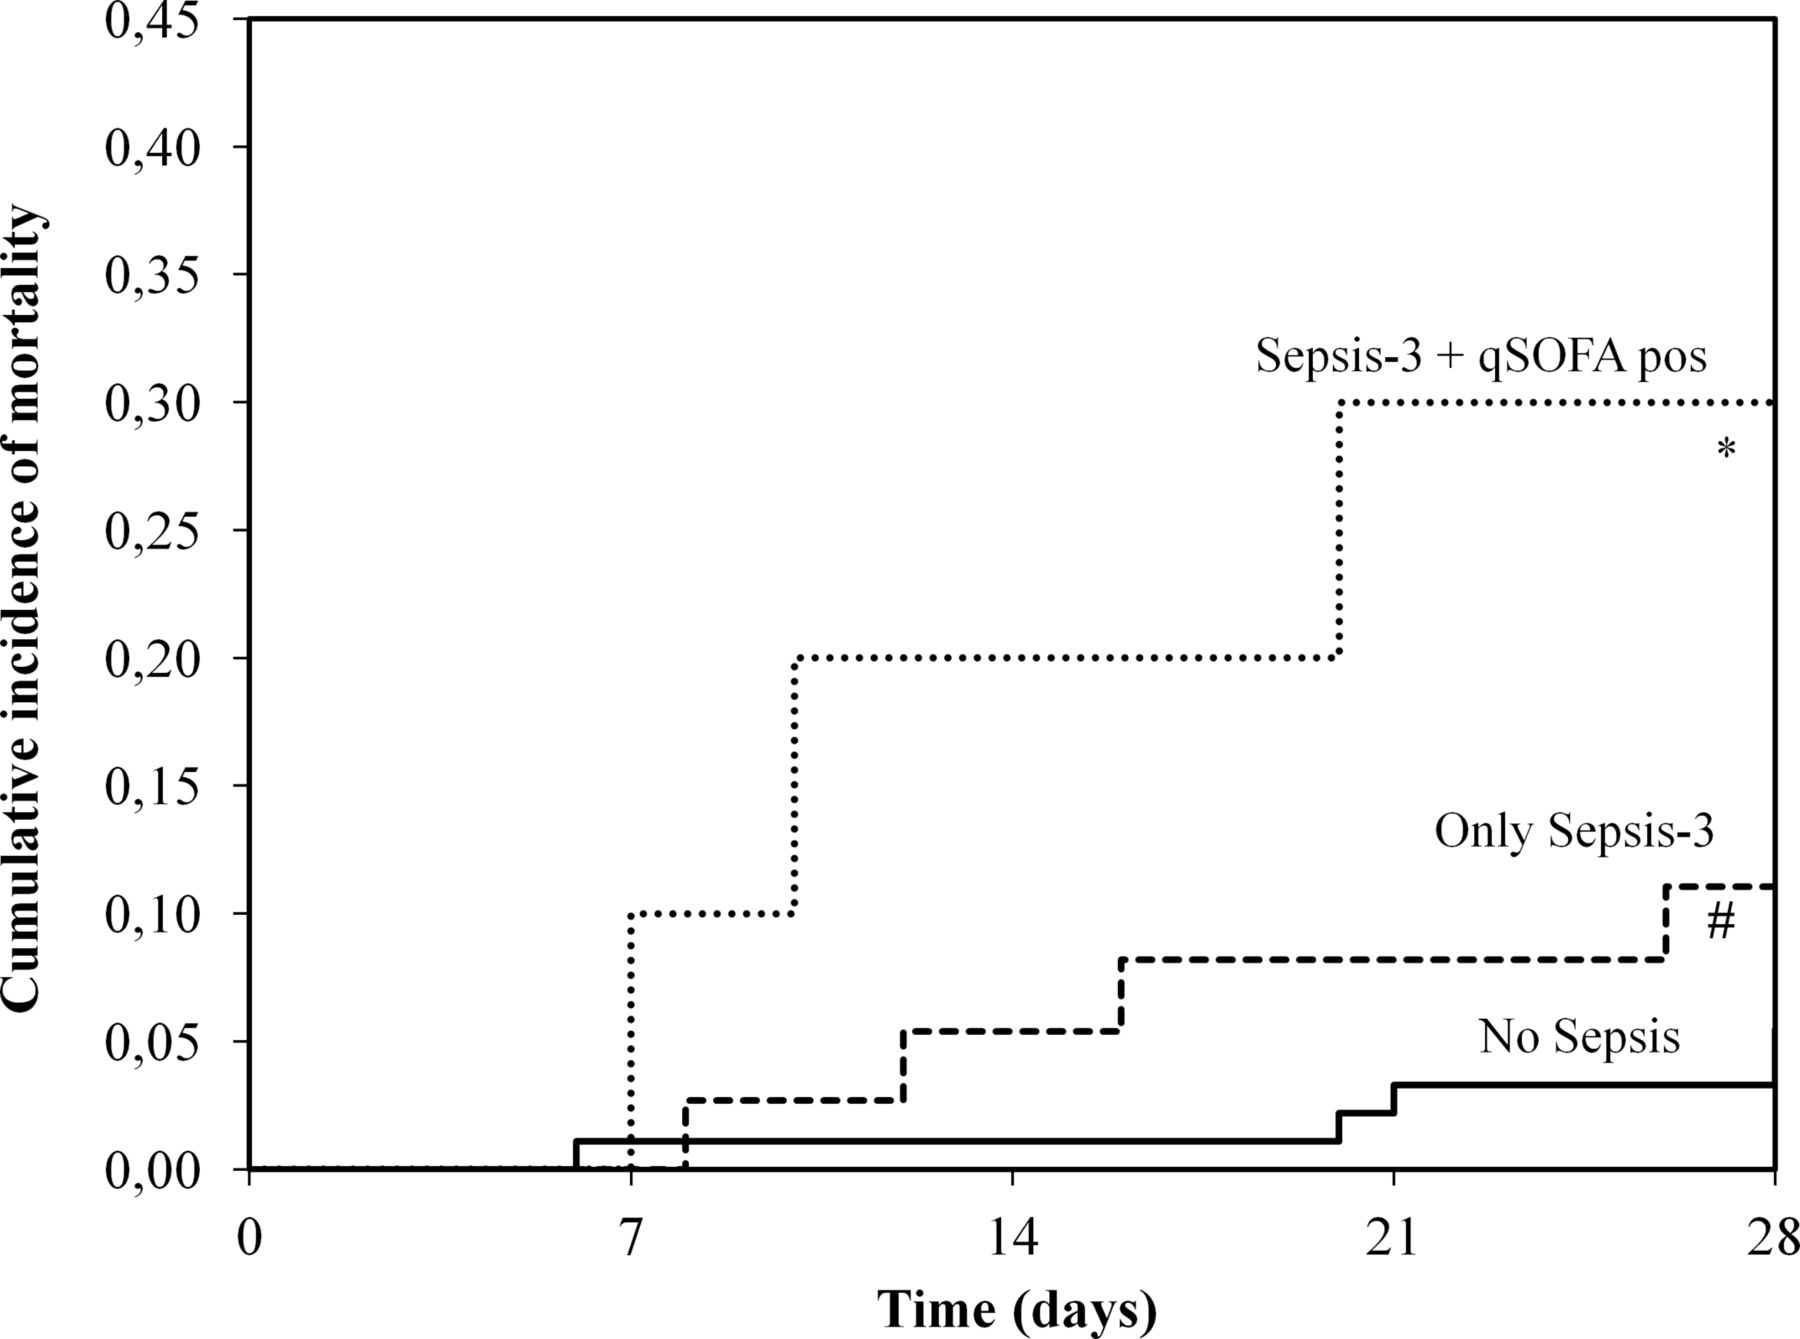 sofa score icu mortality small table lamps assessment of sepsis 3 criteria and quick in patients